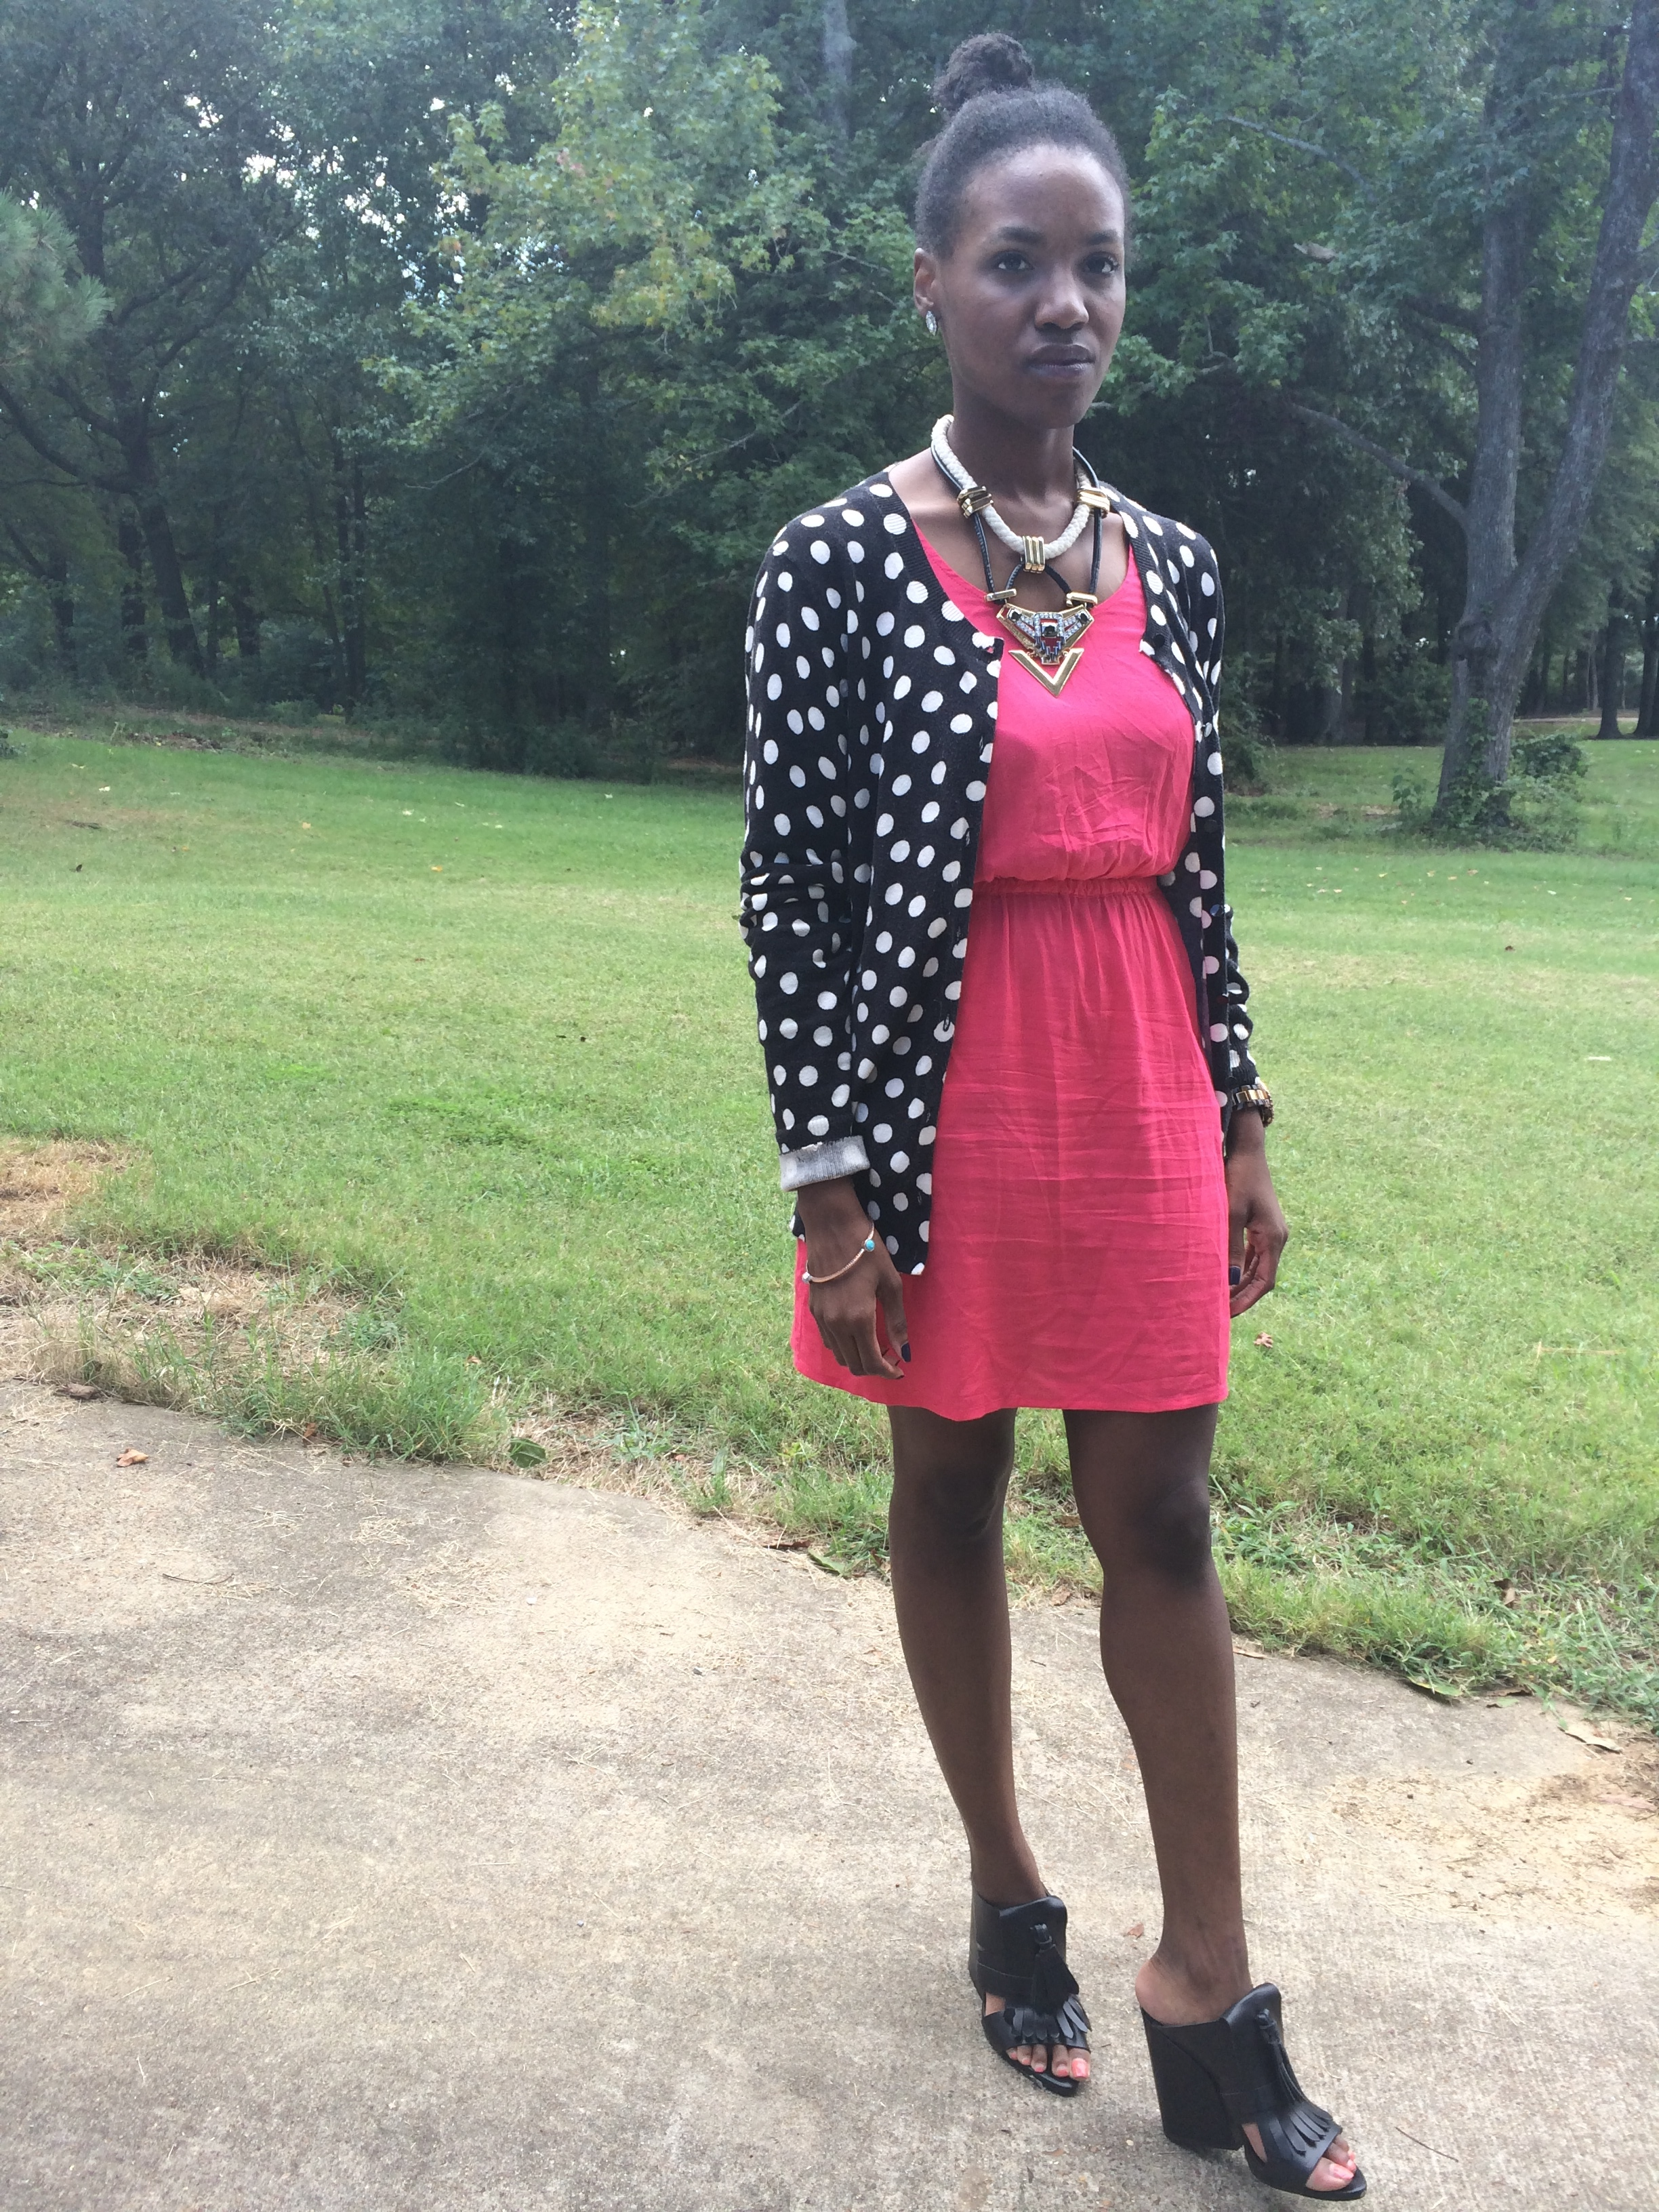 outfit details- cardigan: thrifted; dress: Target; shoes: Zara; necklace: Topshop